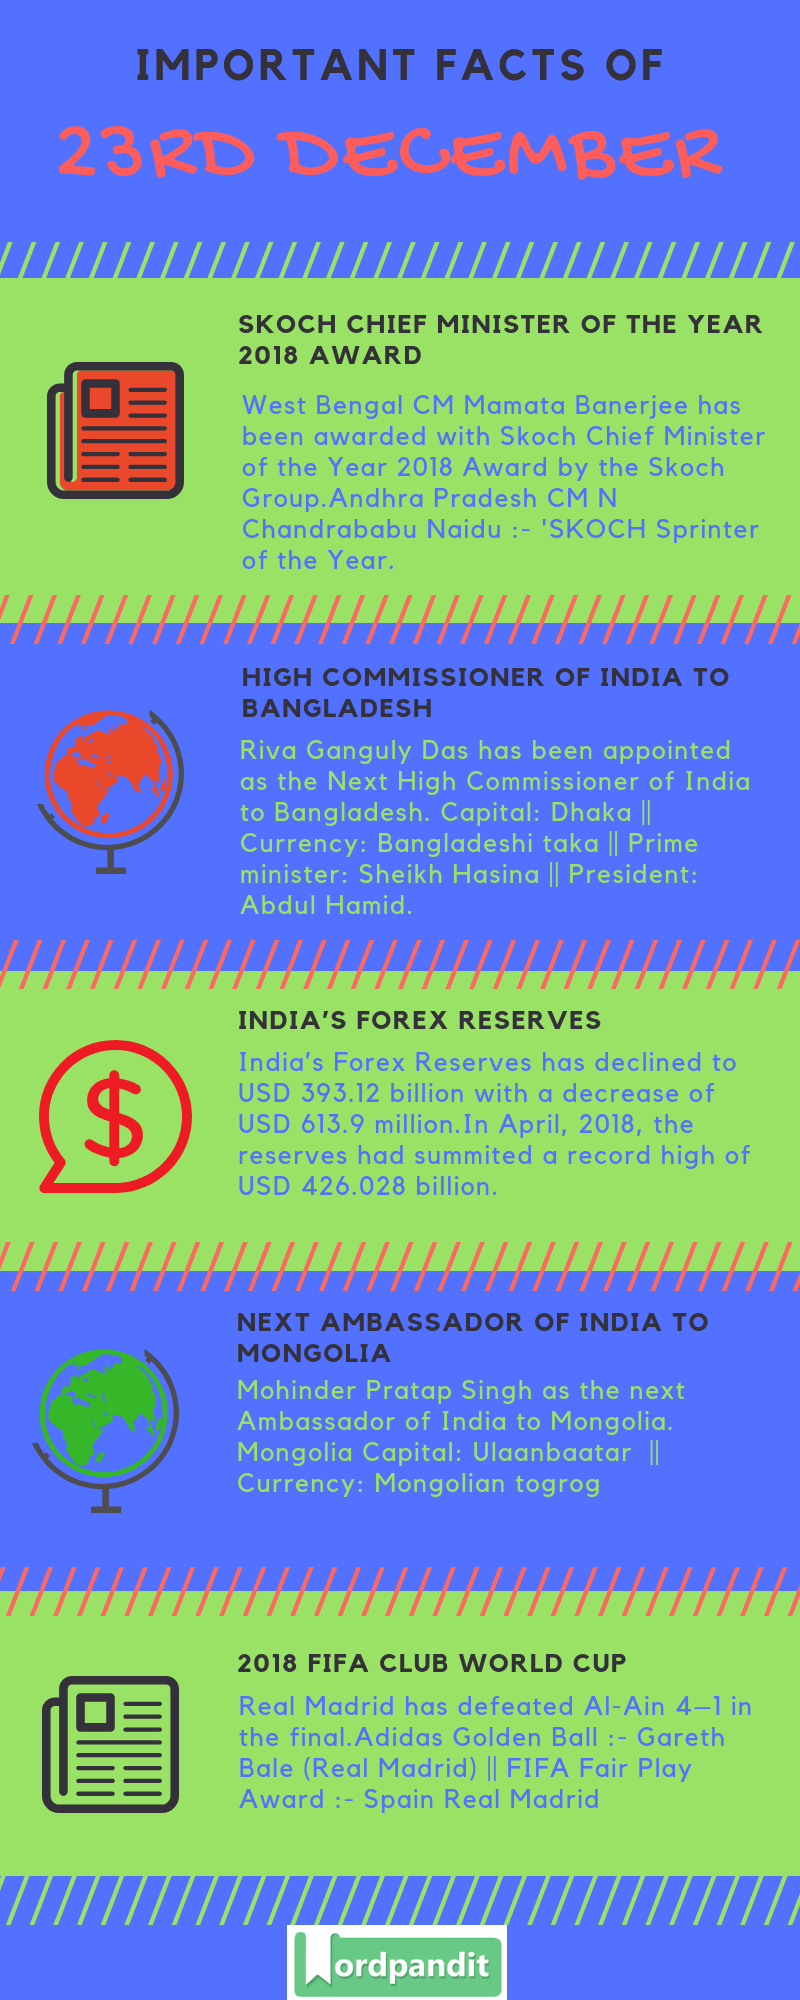 Daily Current Affairs 23 December 2018 Current Affairs Quiz 23 December 2018 Current Affairs Infographic